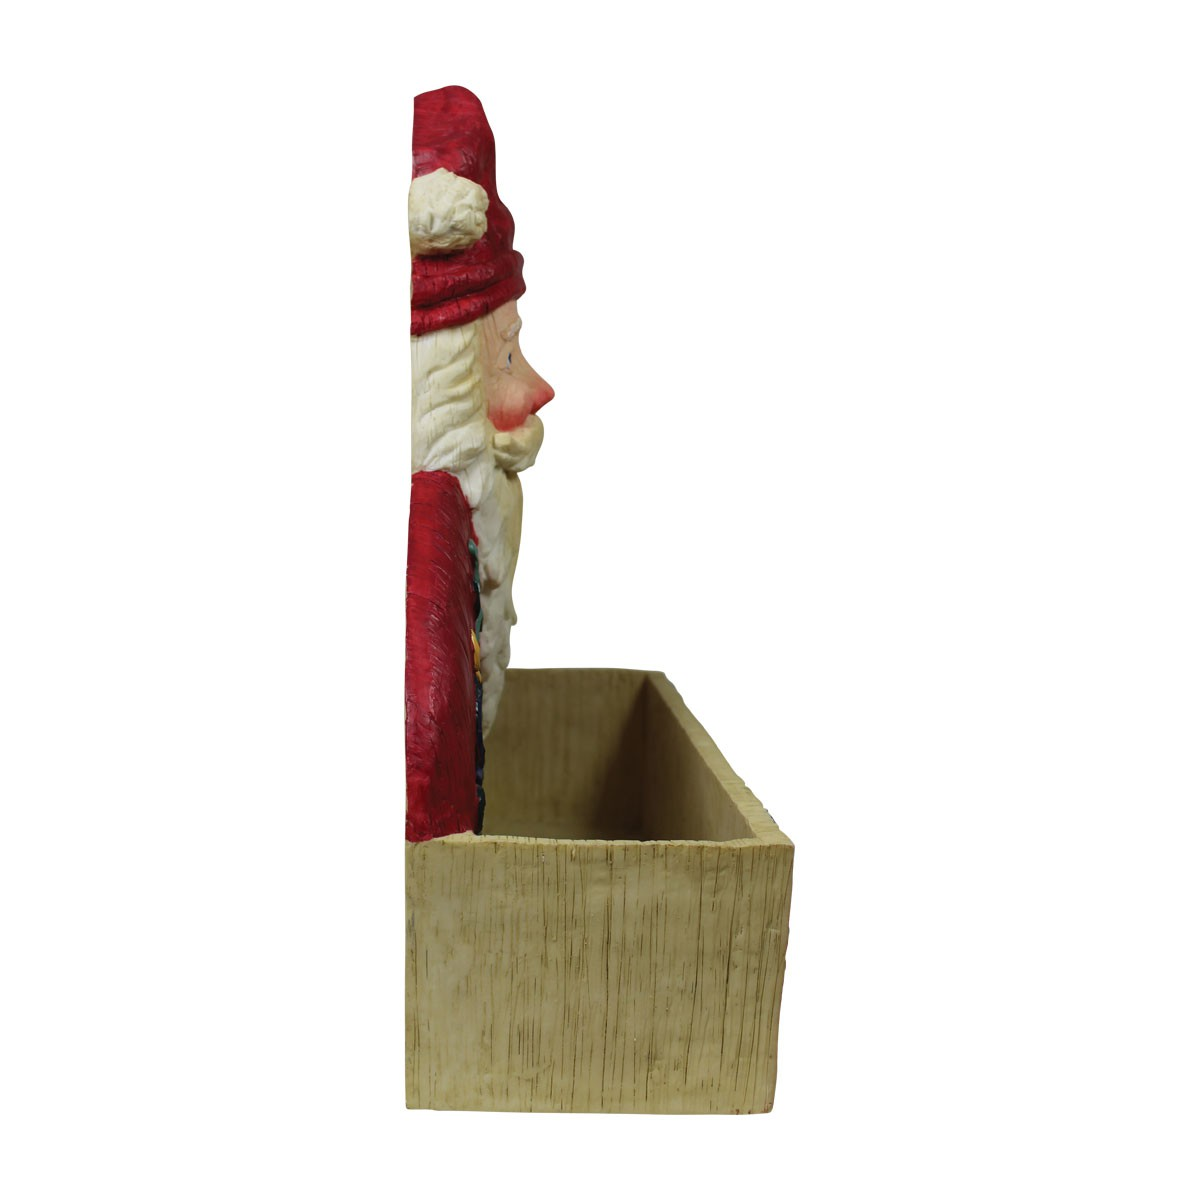 Greeting card holder santa holiday redwhite holder pregreeting card holder santa holiday redwhite holder m4hsunfo